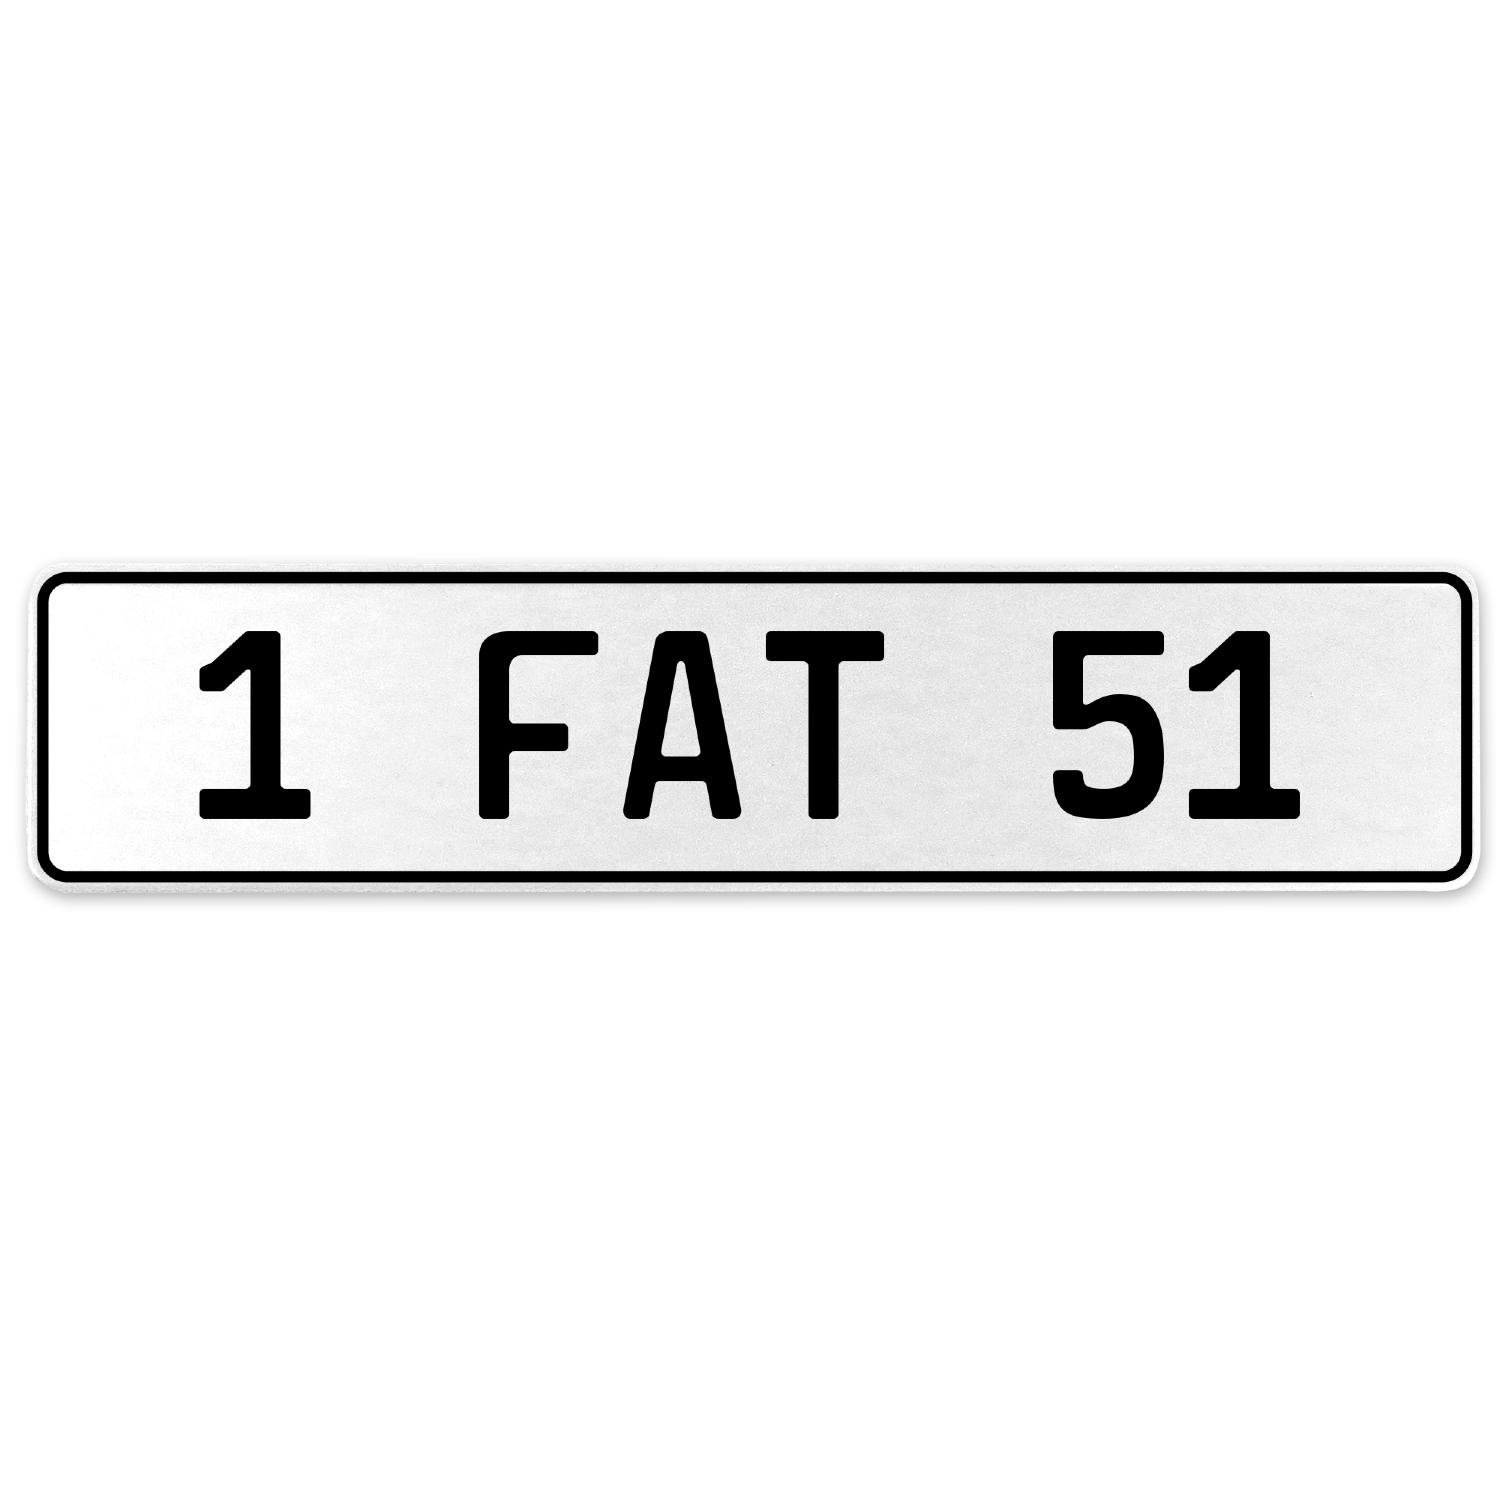 Vintage Parts 554648 1 Fat 51 White Stamped Aluminum European License Plate